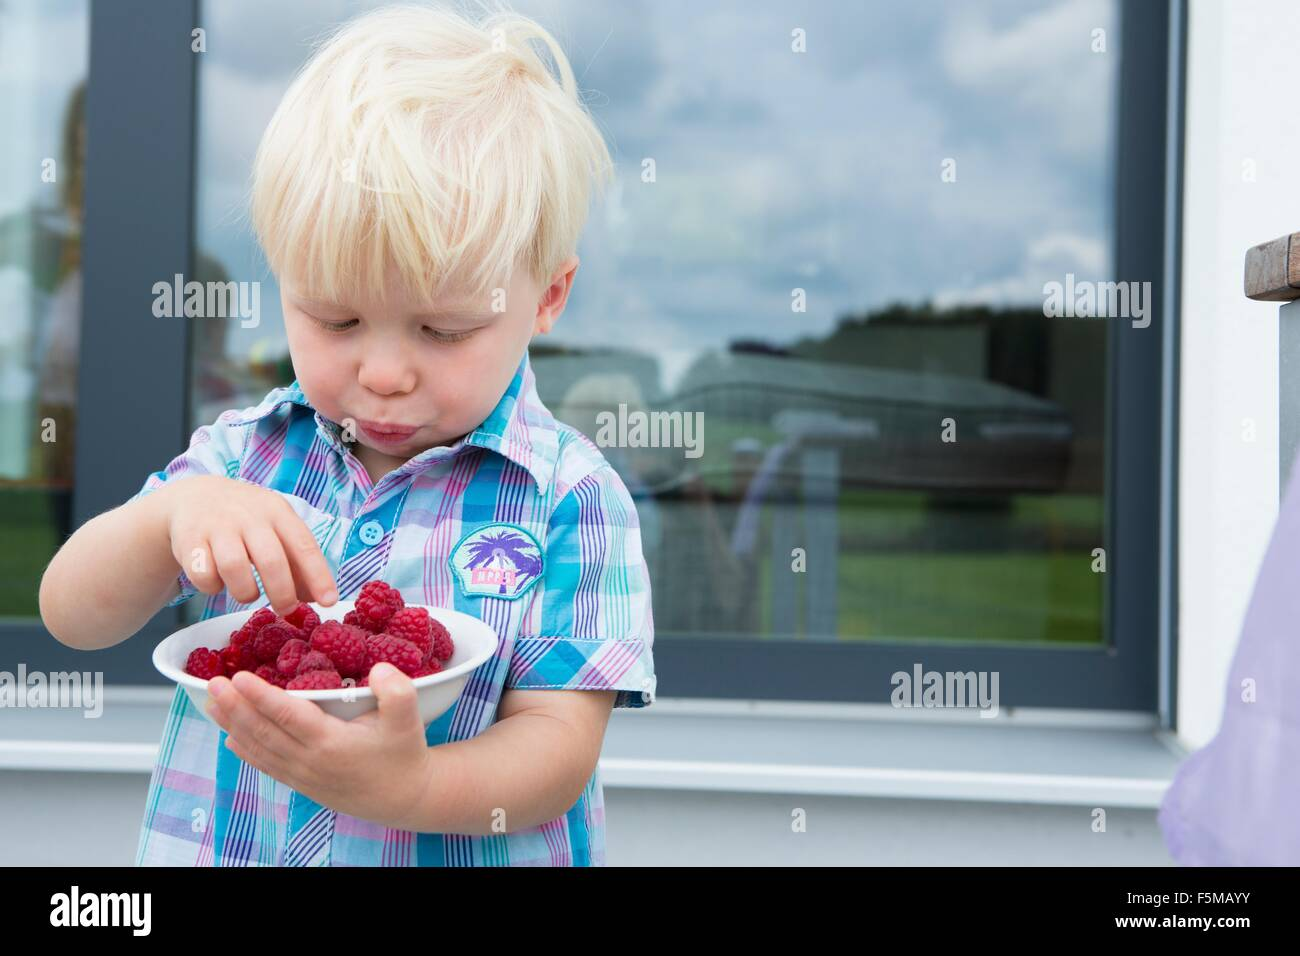 Male toddler on patio eating a bowl of raspberries - Stock Image